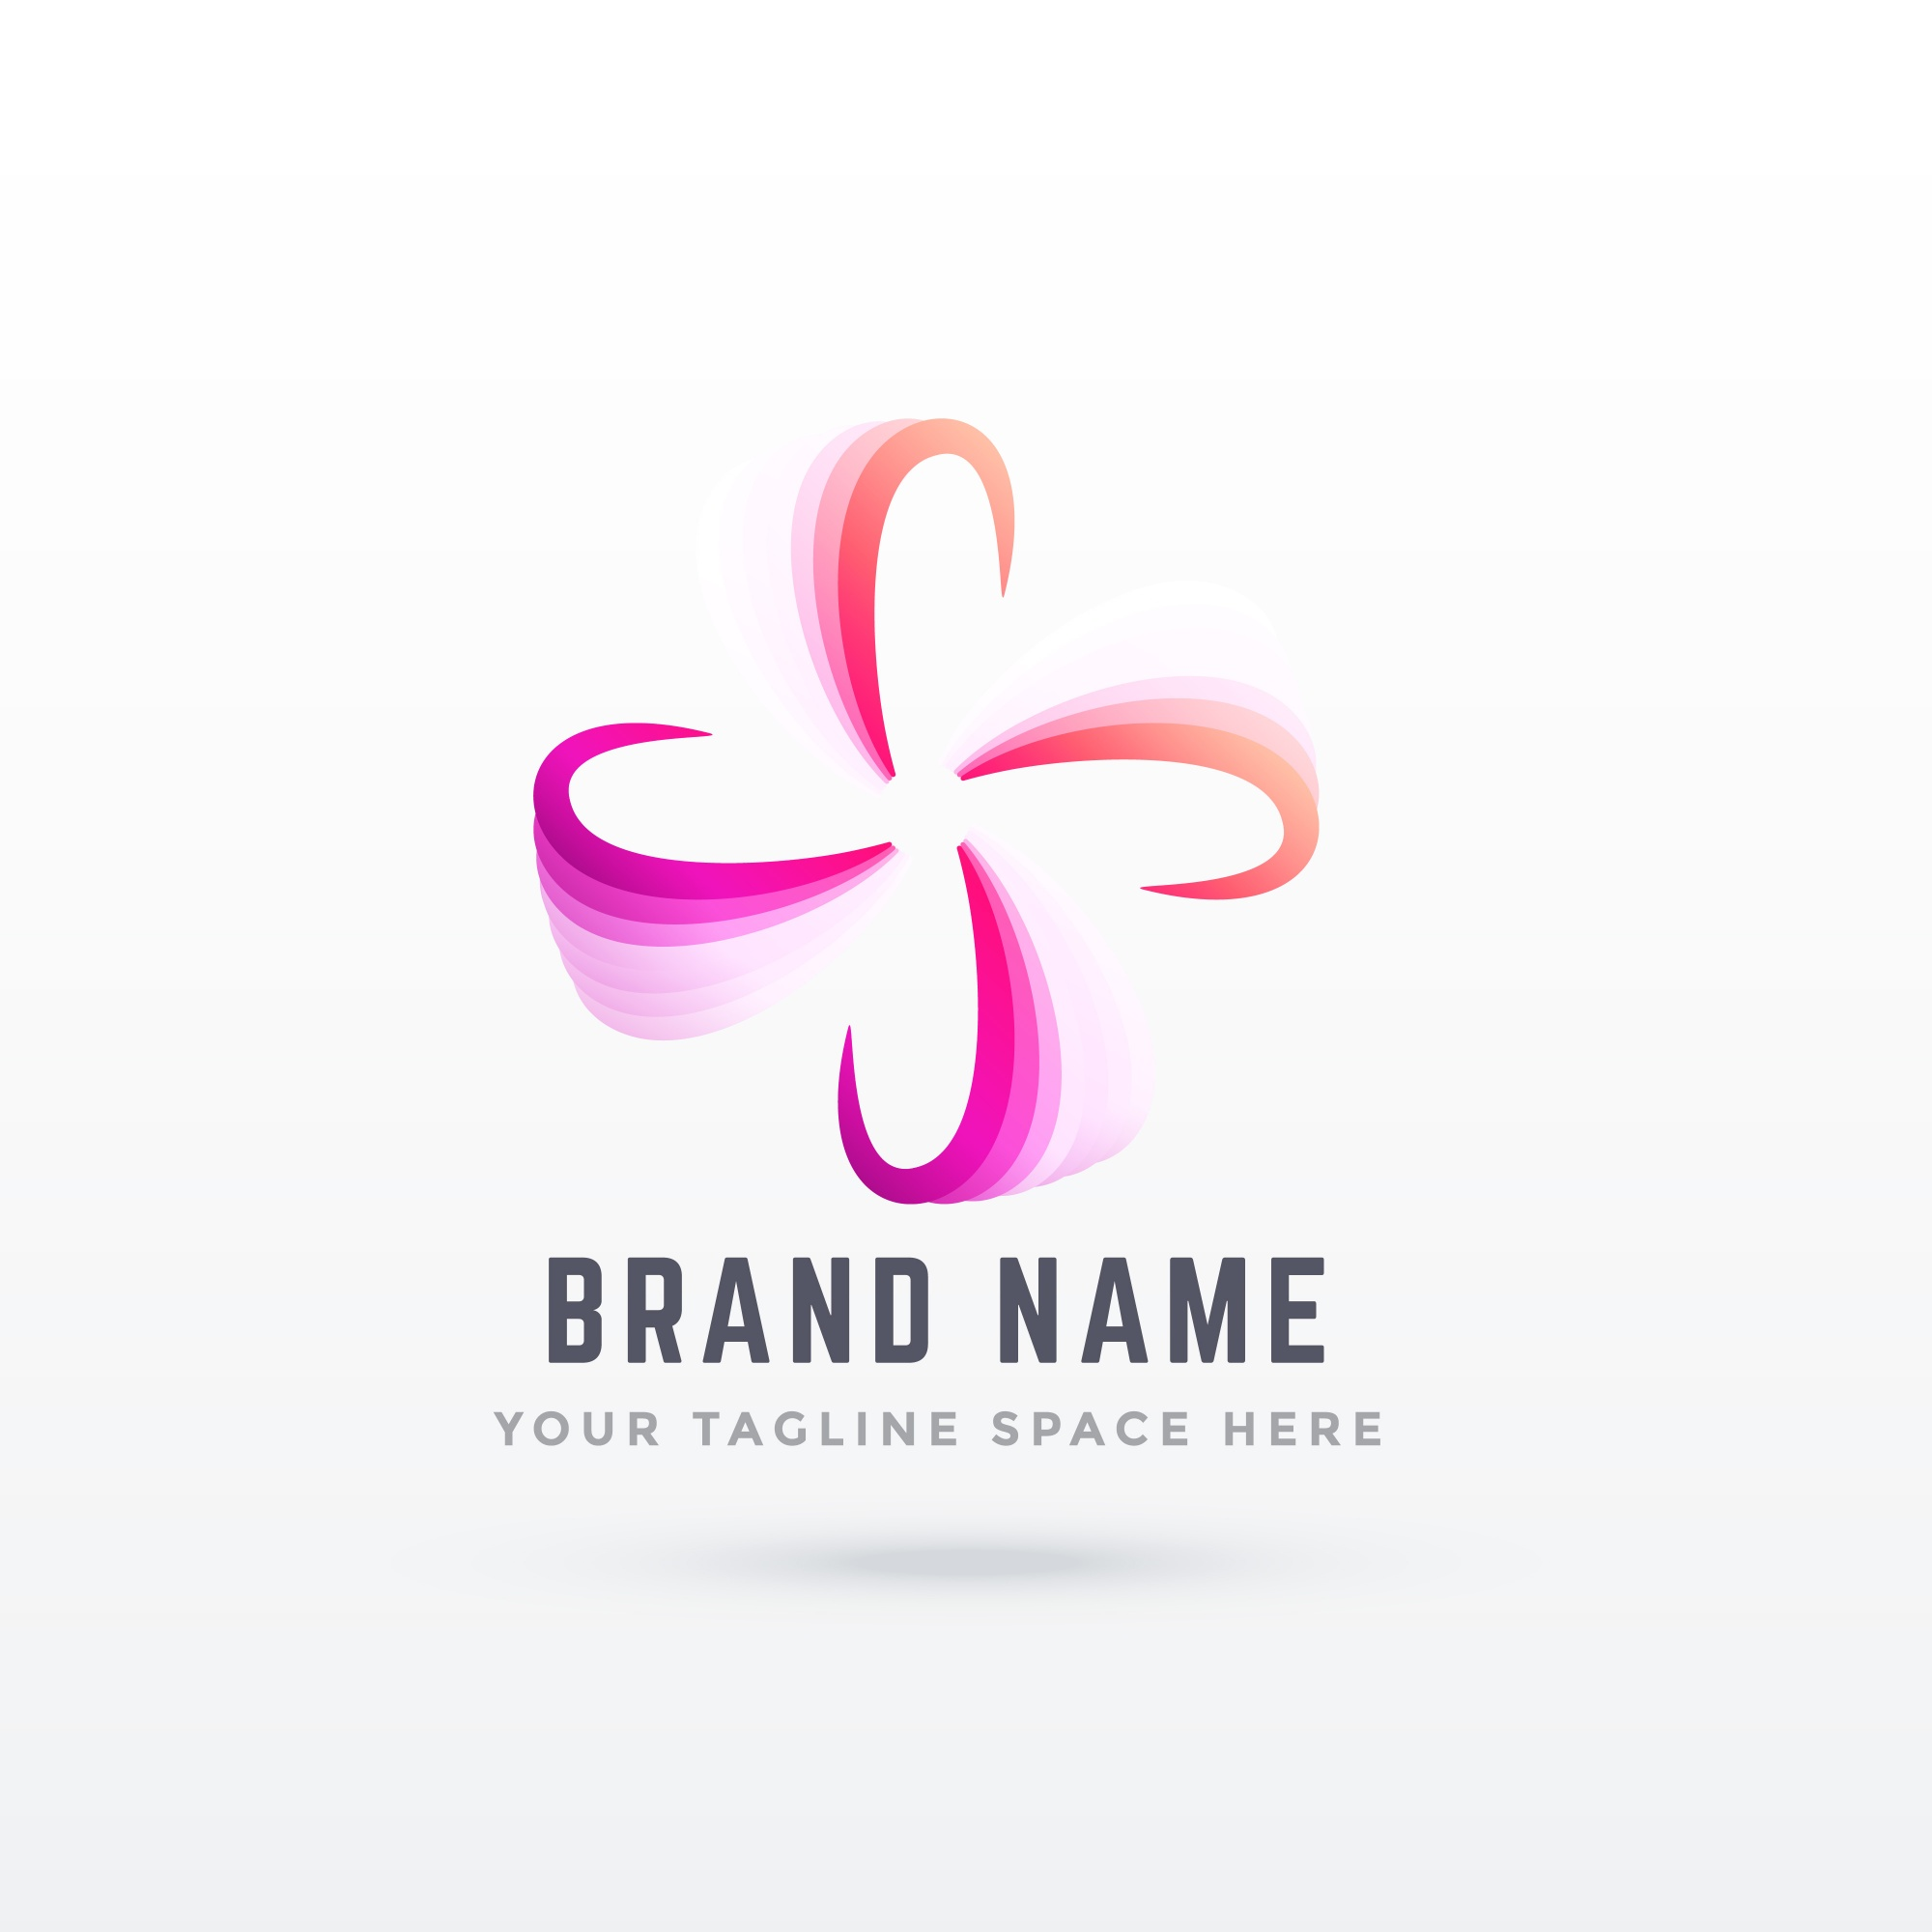 Abstract modern logo